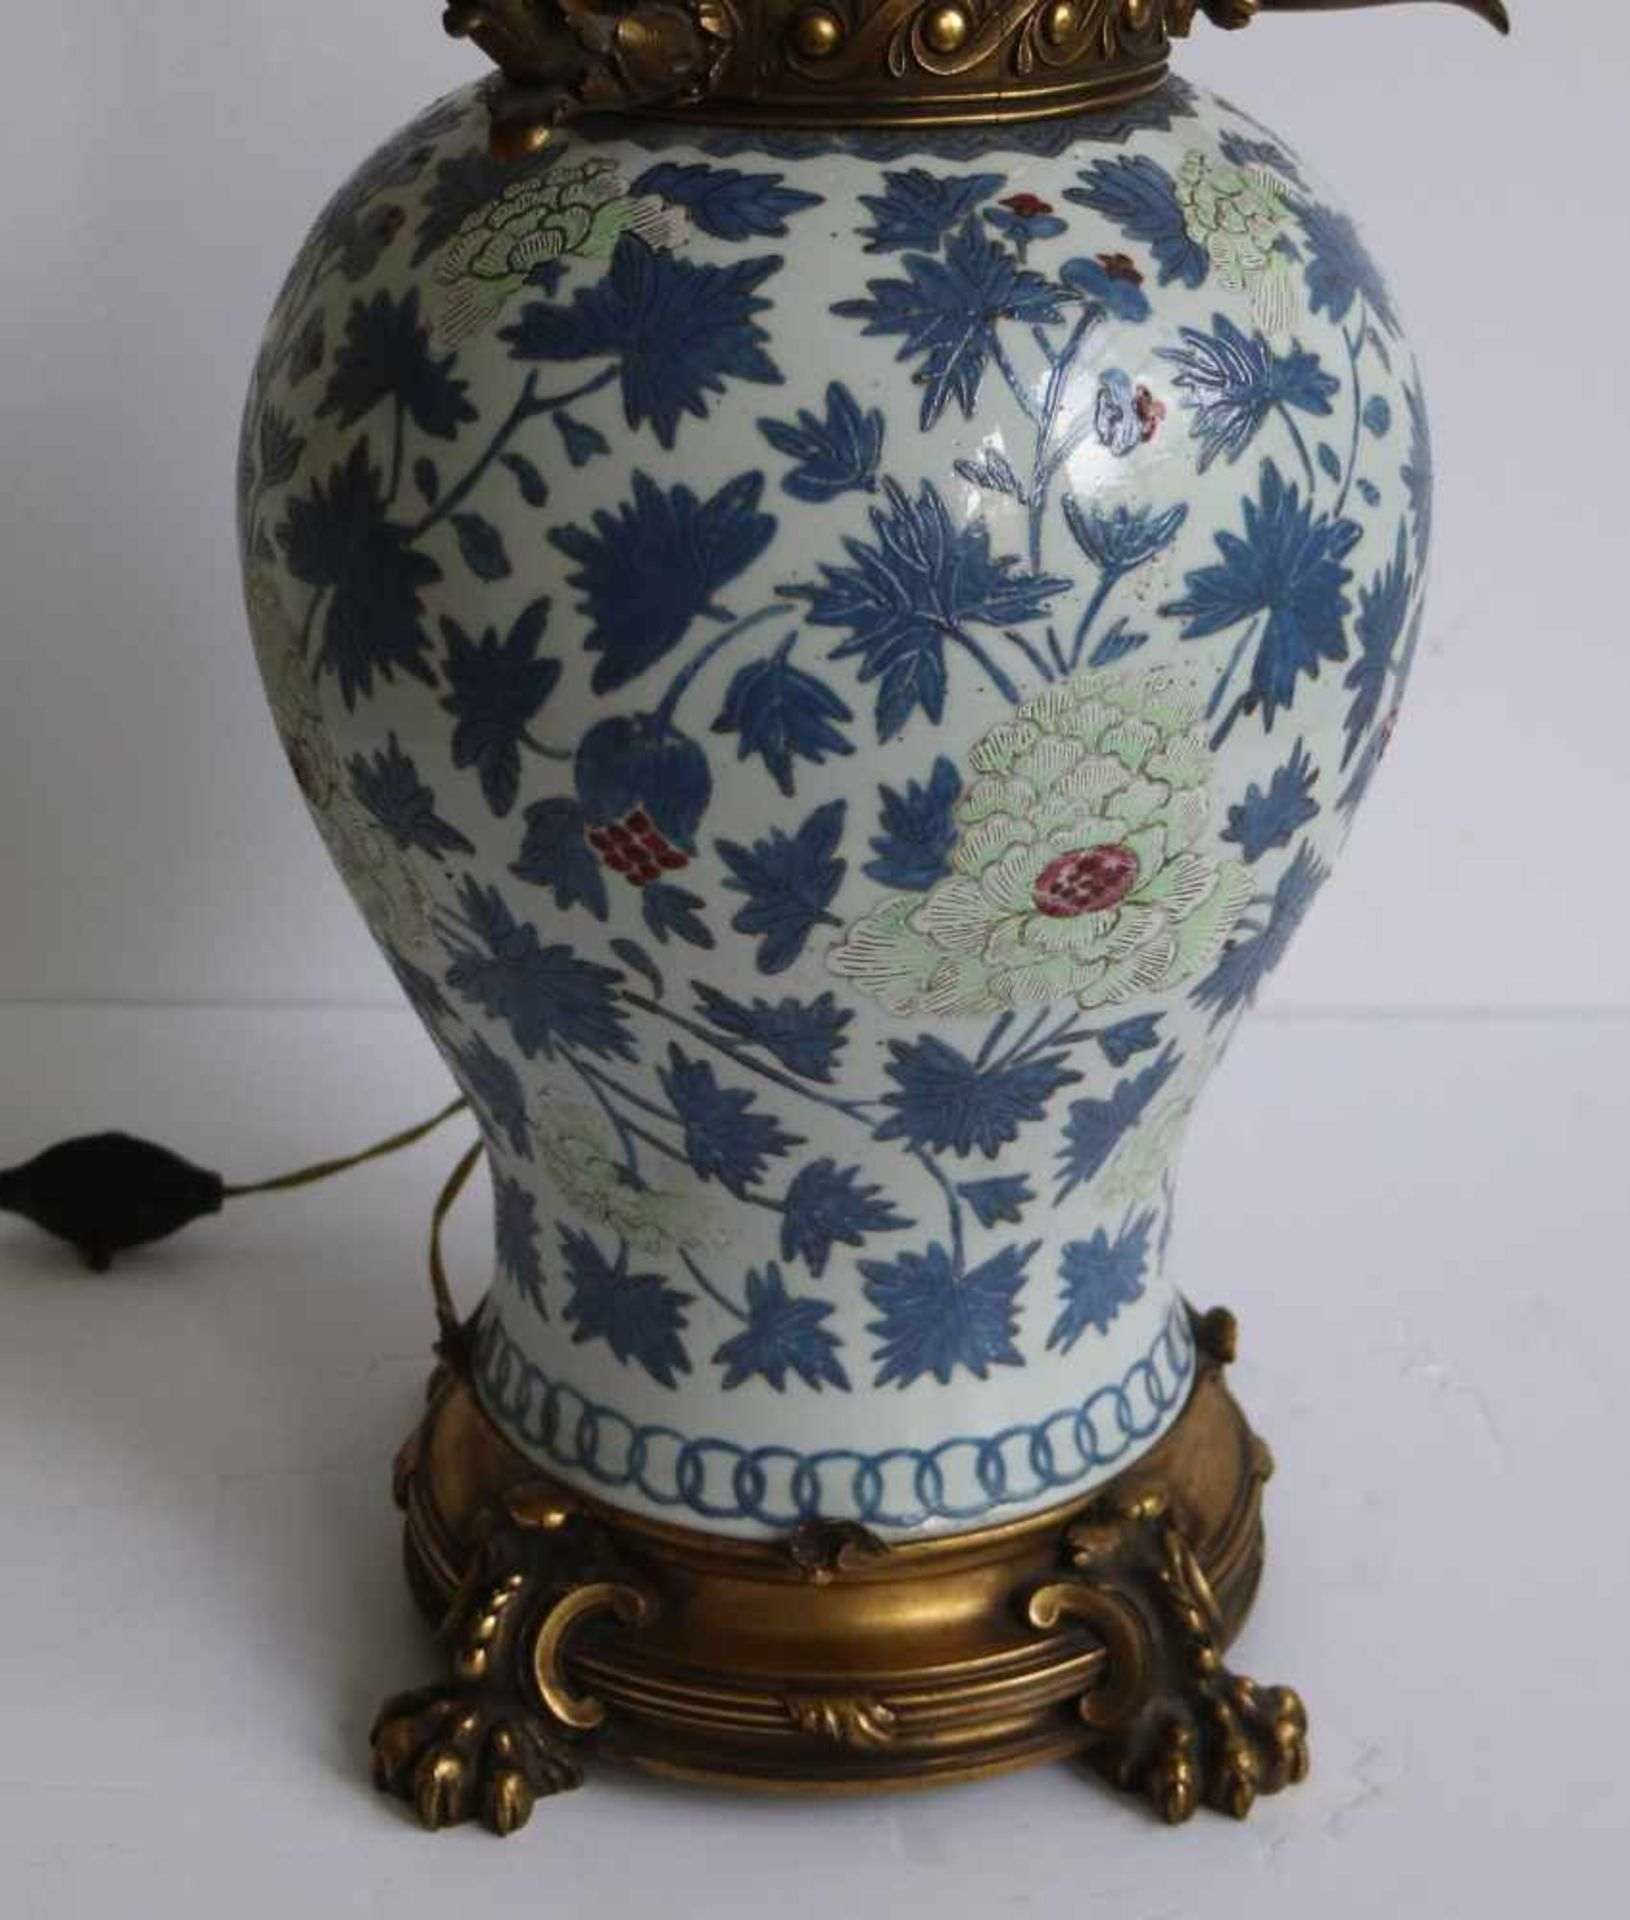 Los 206 - Chinese vase 19th century, transformed into a lamp shade H 97 cm, vaas 30 cm